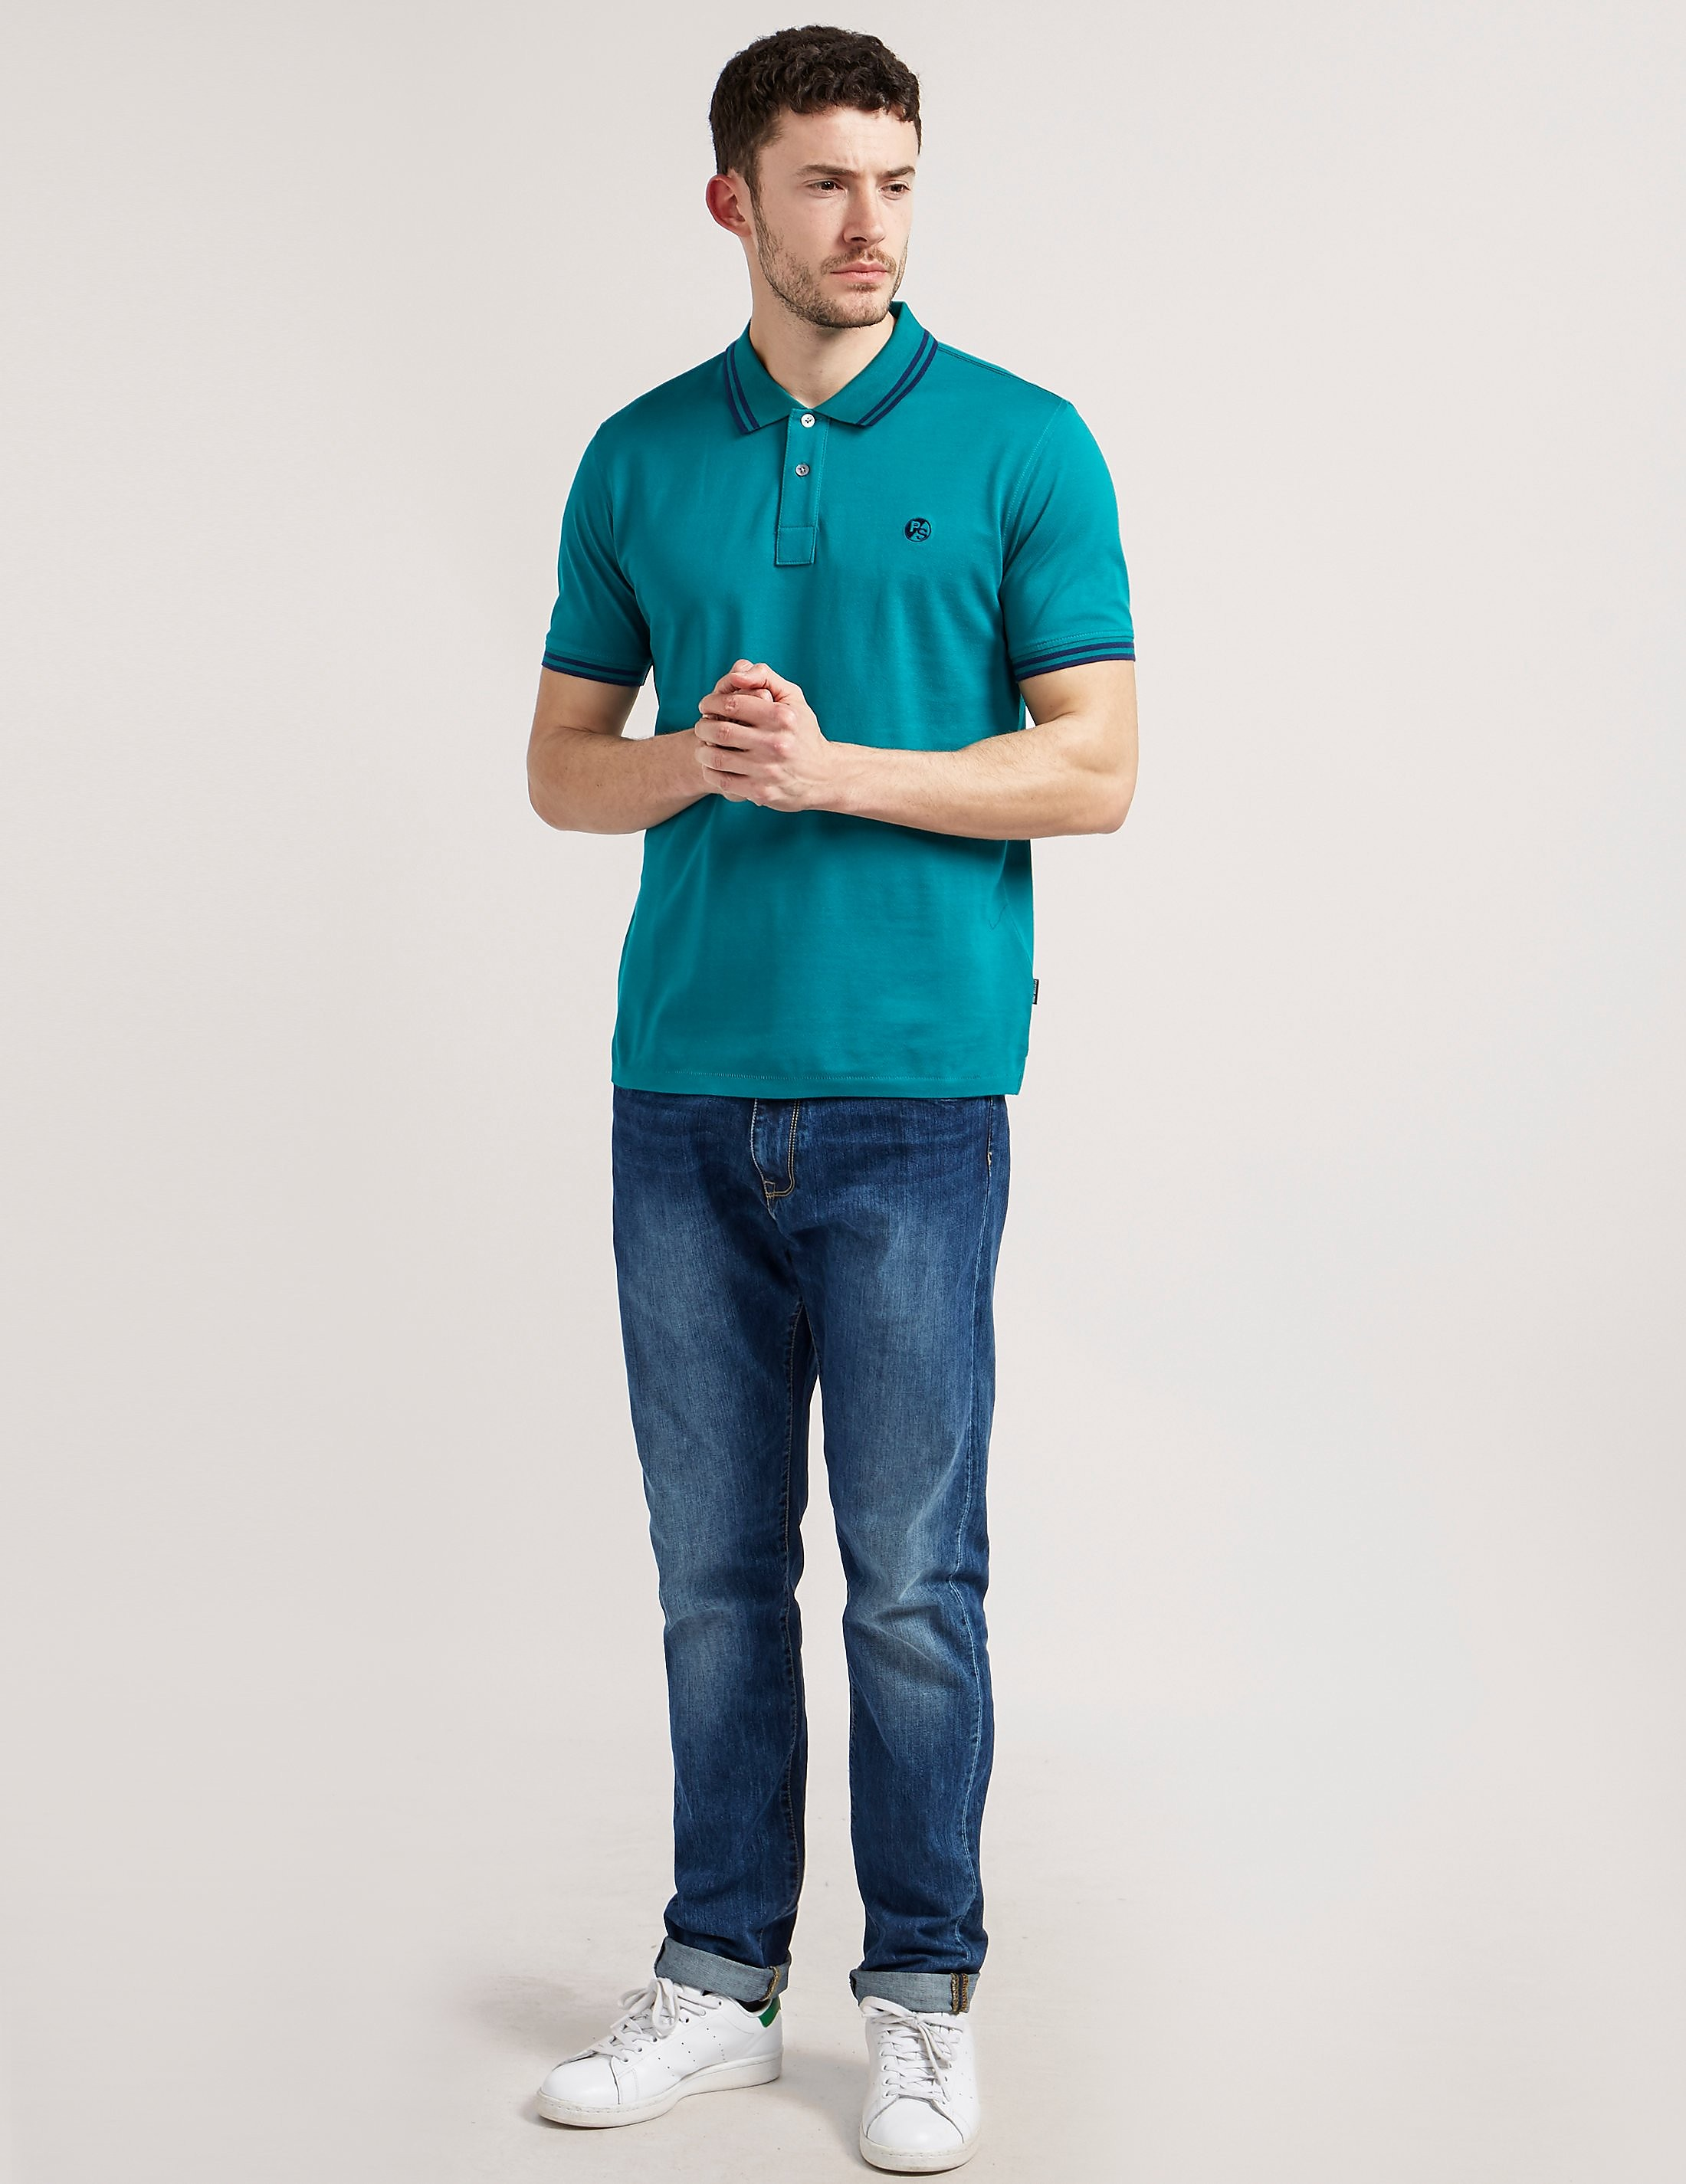 Paul Smith Mercerised Polo Shirt